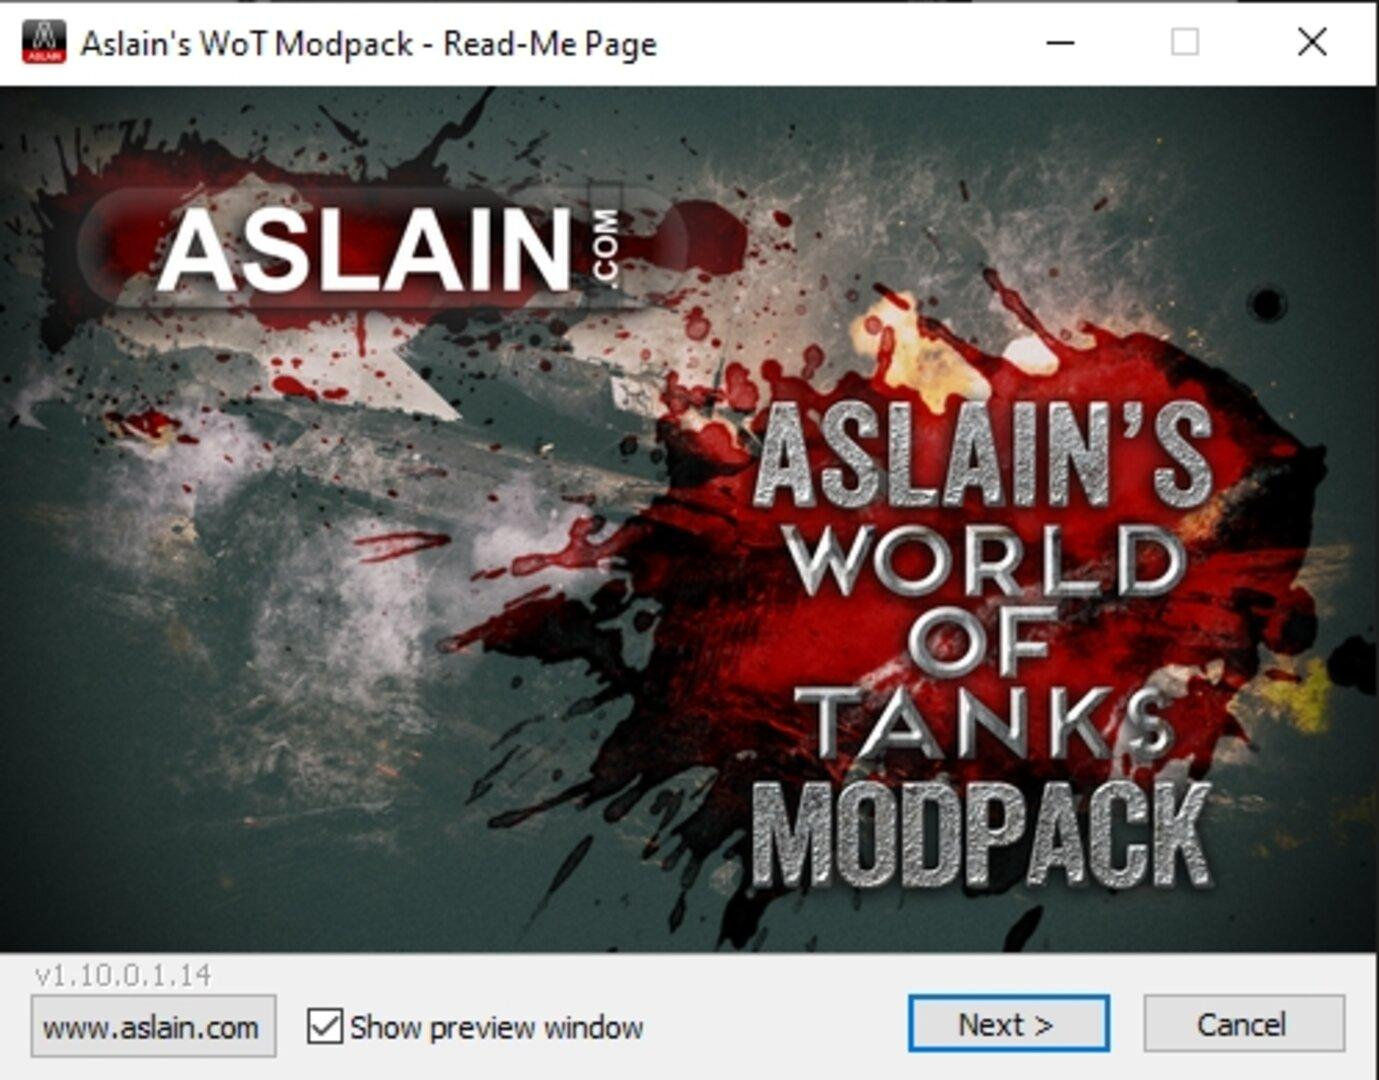 How to install Aslain's Modpack WoT.